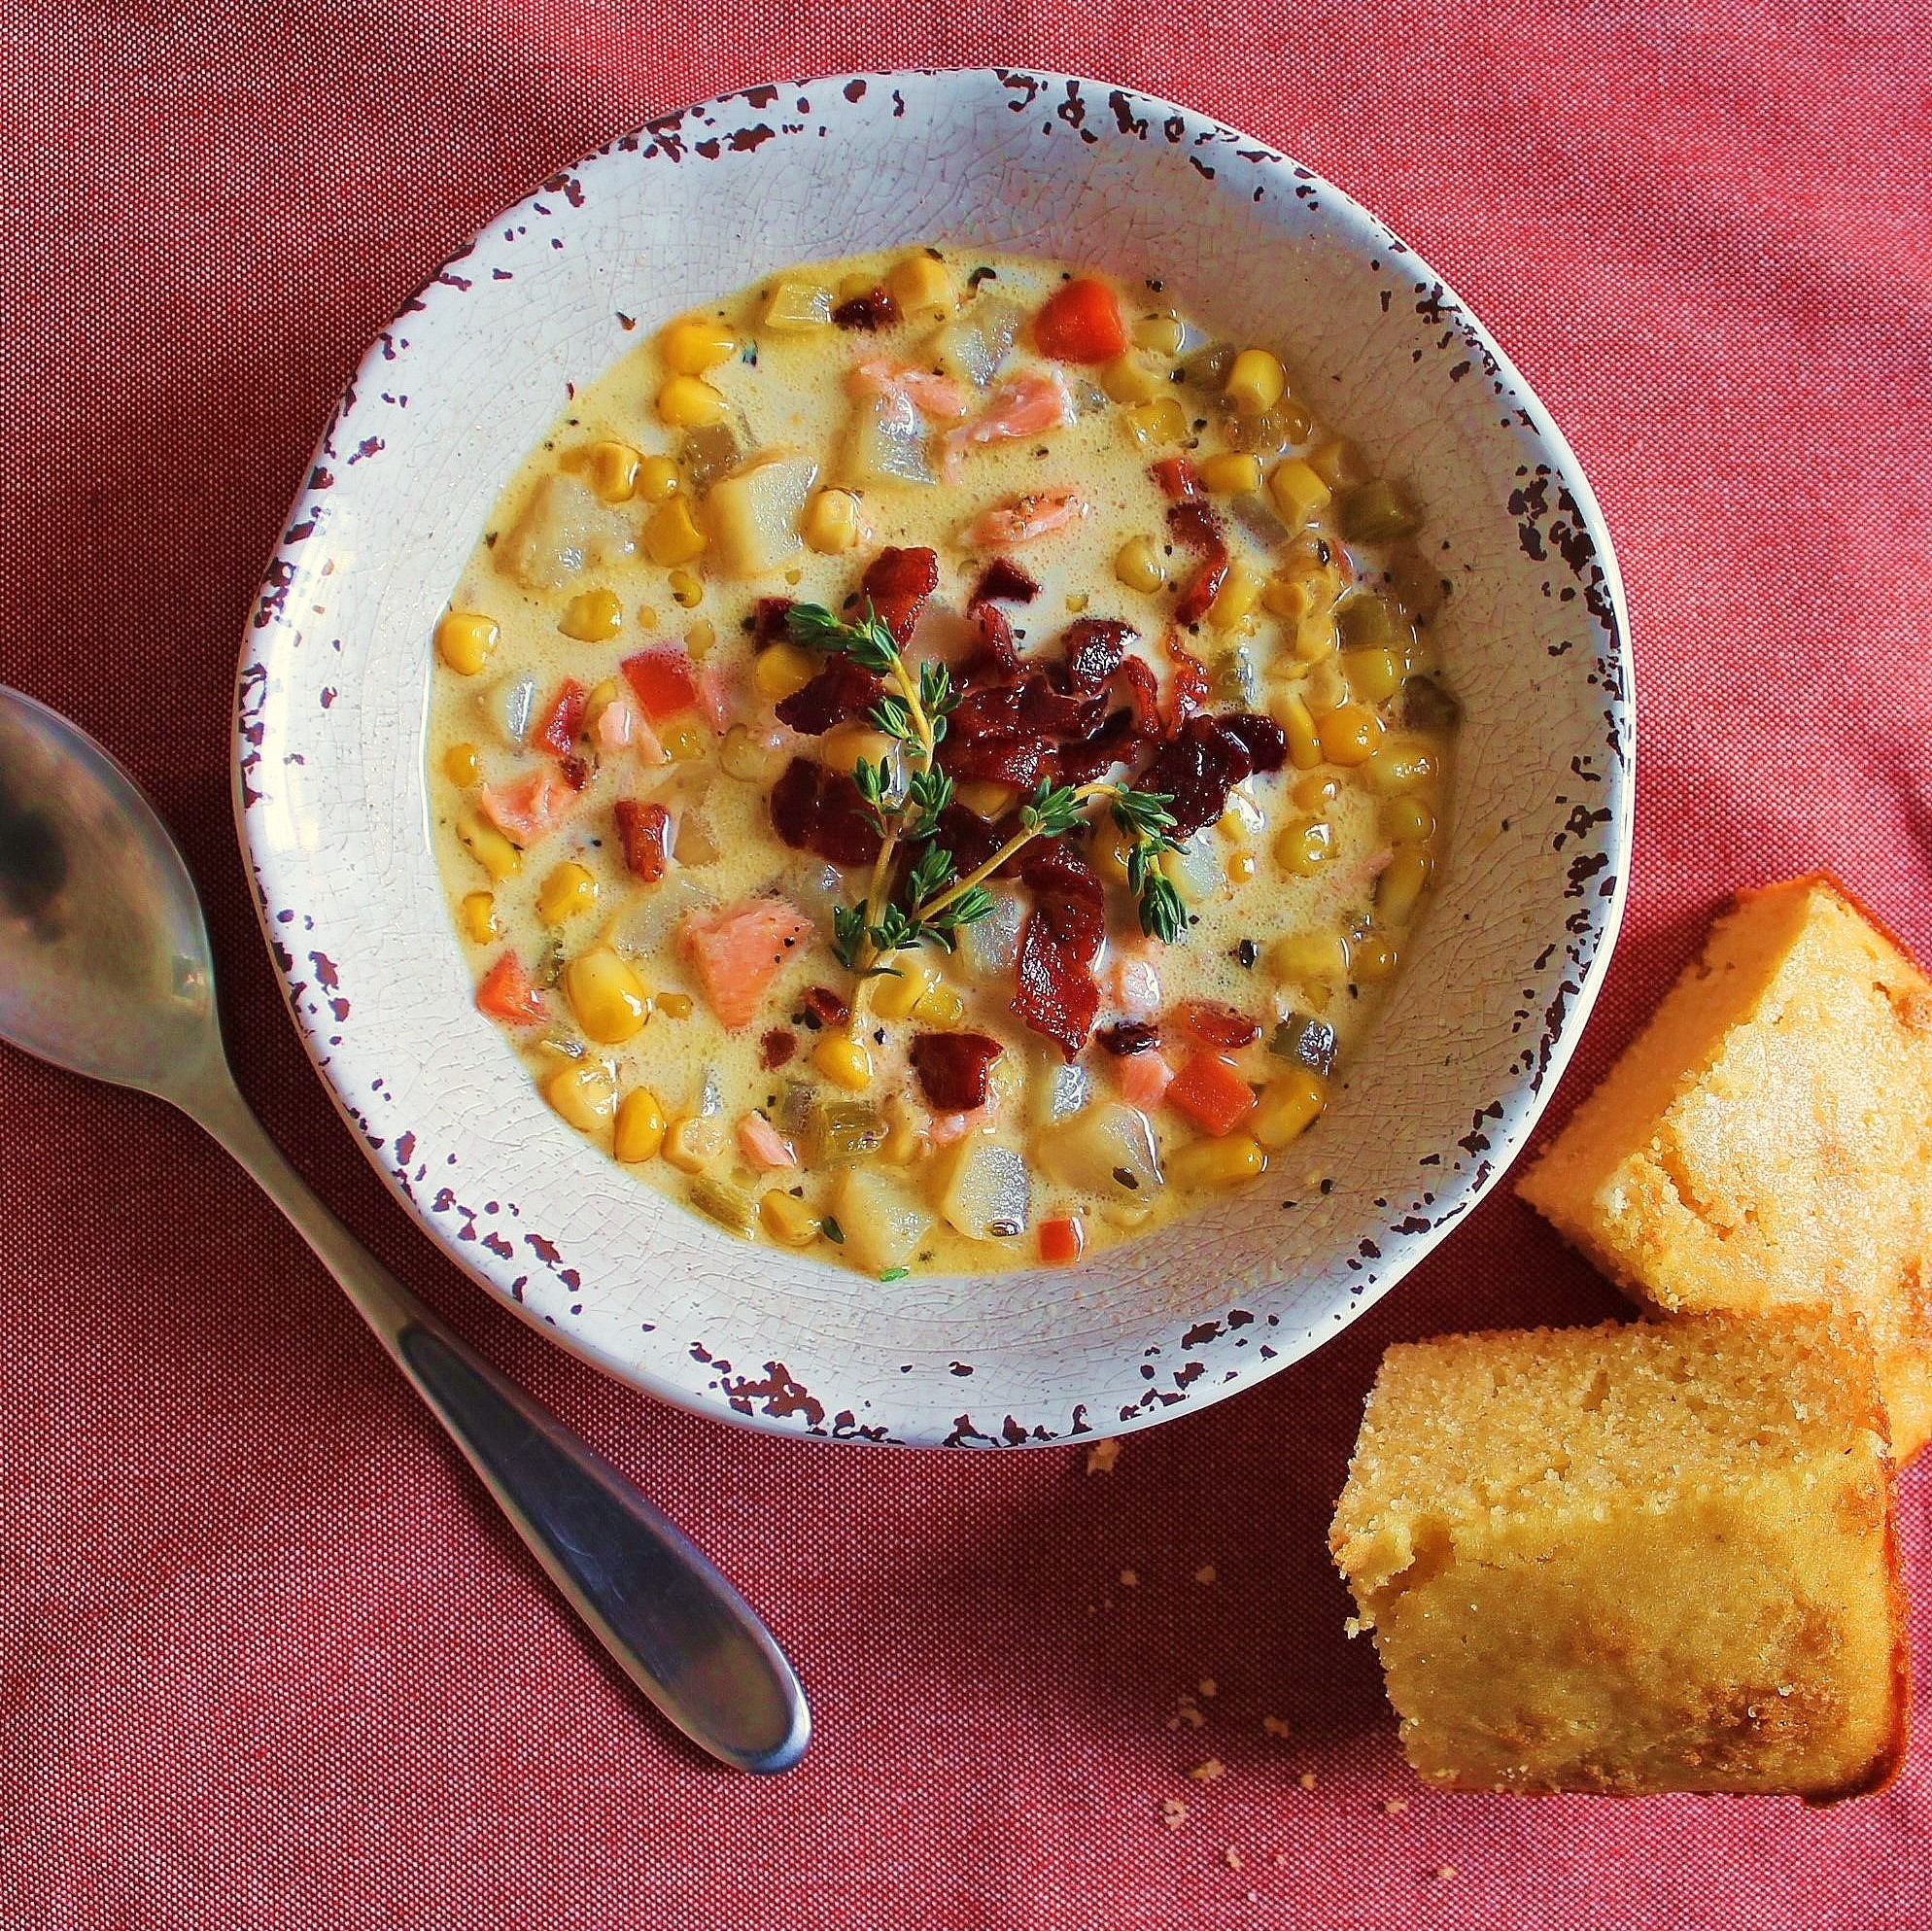 A bowl of Salmon Corn Chowder